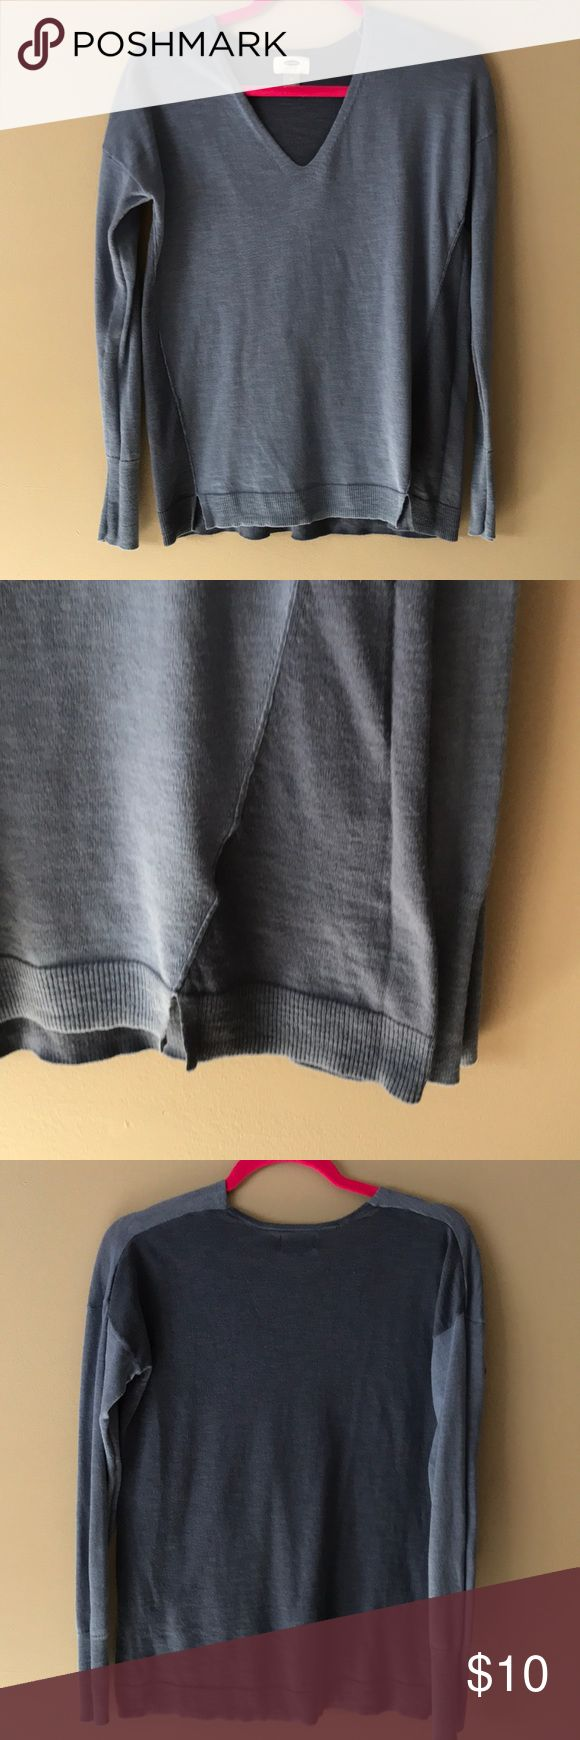 Old Navy blue color block sweater Blue Old Navy colorblock sweater. Light and soft , with small slit detail and two tones of blue. Versatile and comfortable!  Willing to offer discount on sweater bundles - need to clear out! Old Navy Sweaters V-Necks